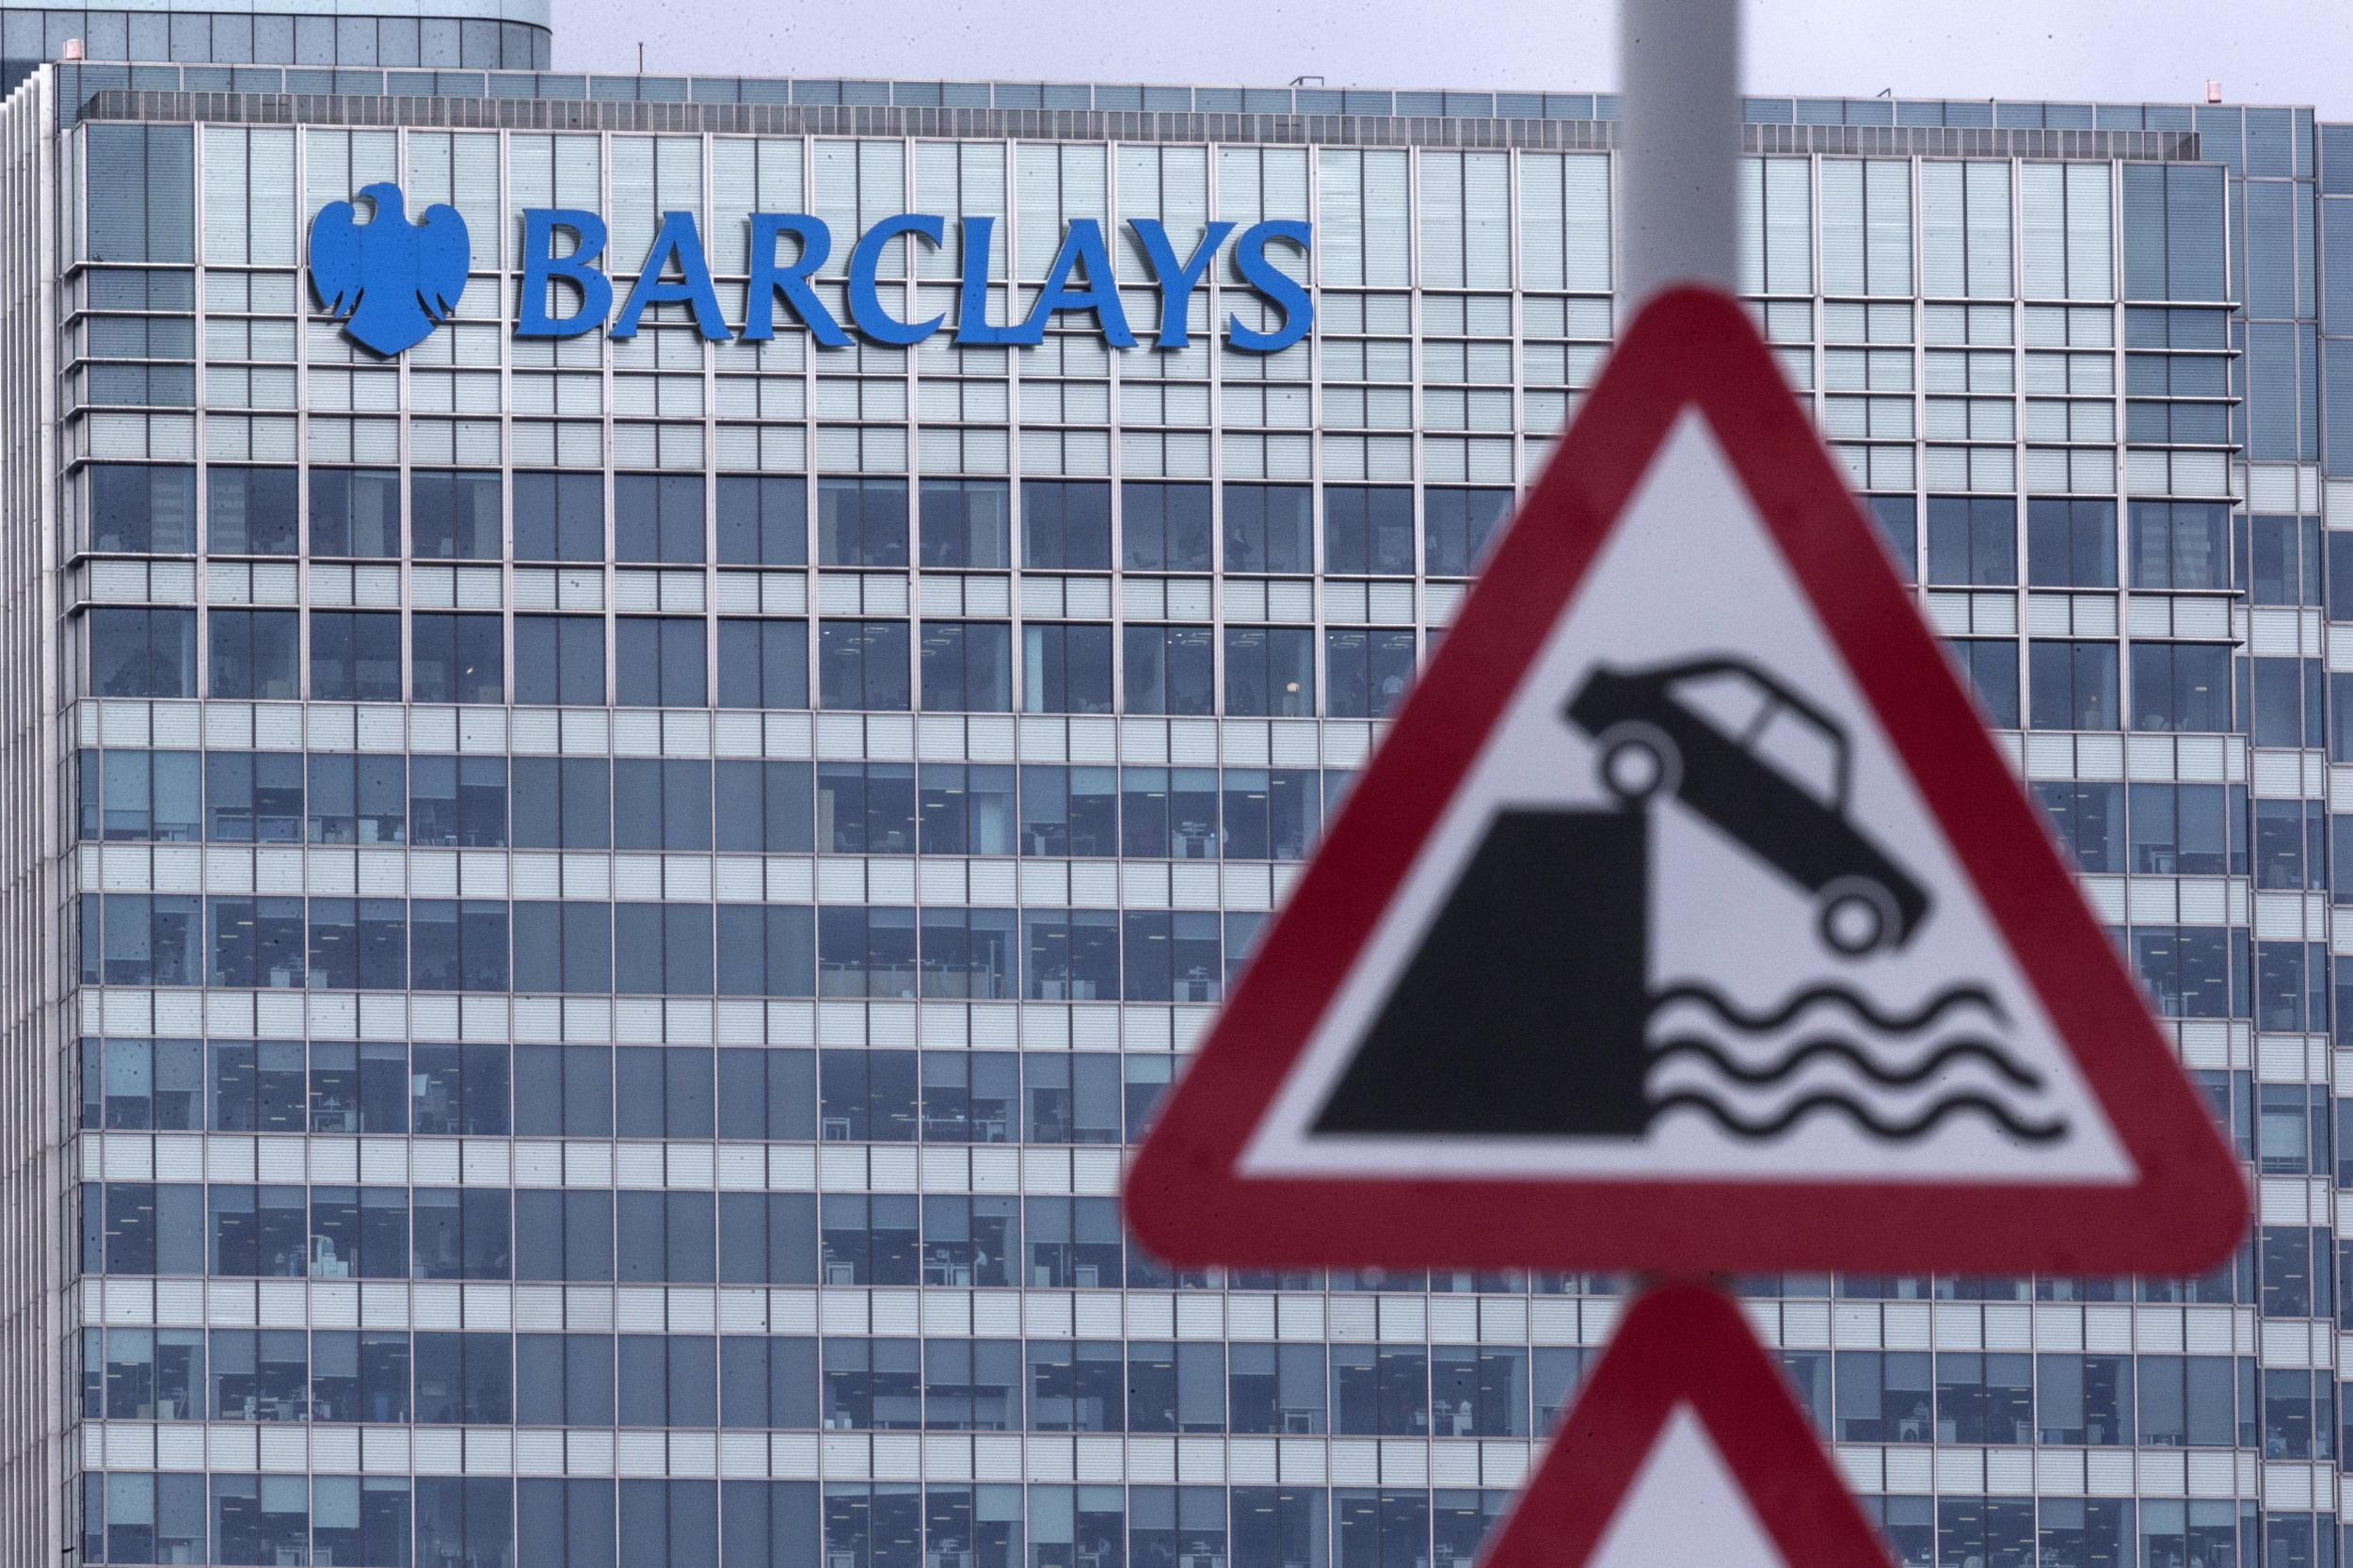 customer perceived benefits of barclays bank Barclays bank of kenya is on the verge of celebrating its 100th birthday the 800,000-strong customer base makes barclays one of the country's largest banks the bank's success can be judged upon the influence perceived within kenya.